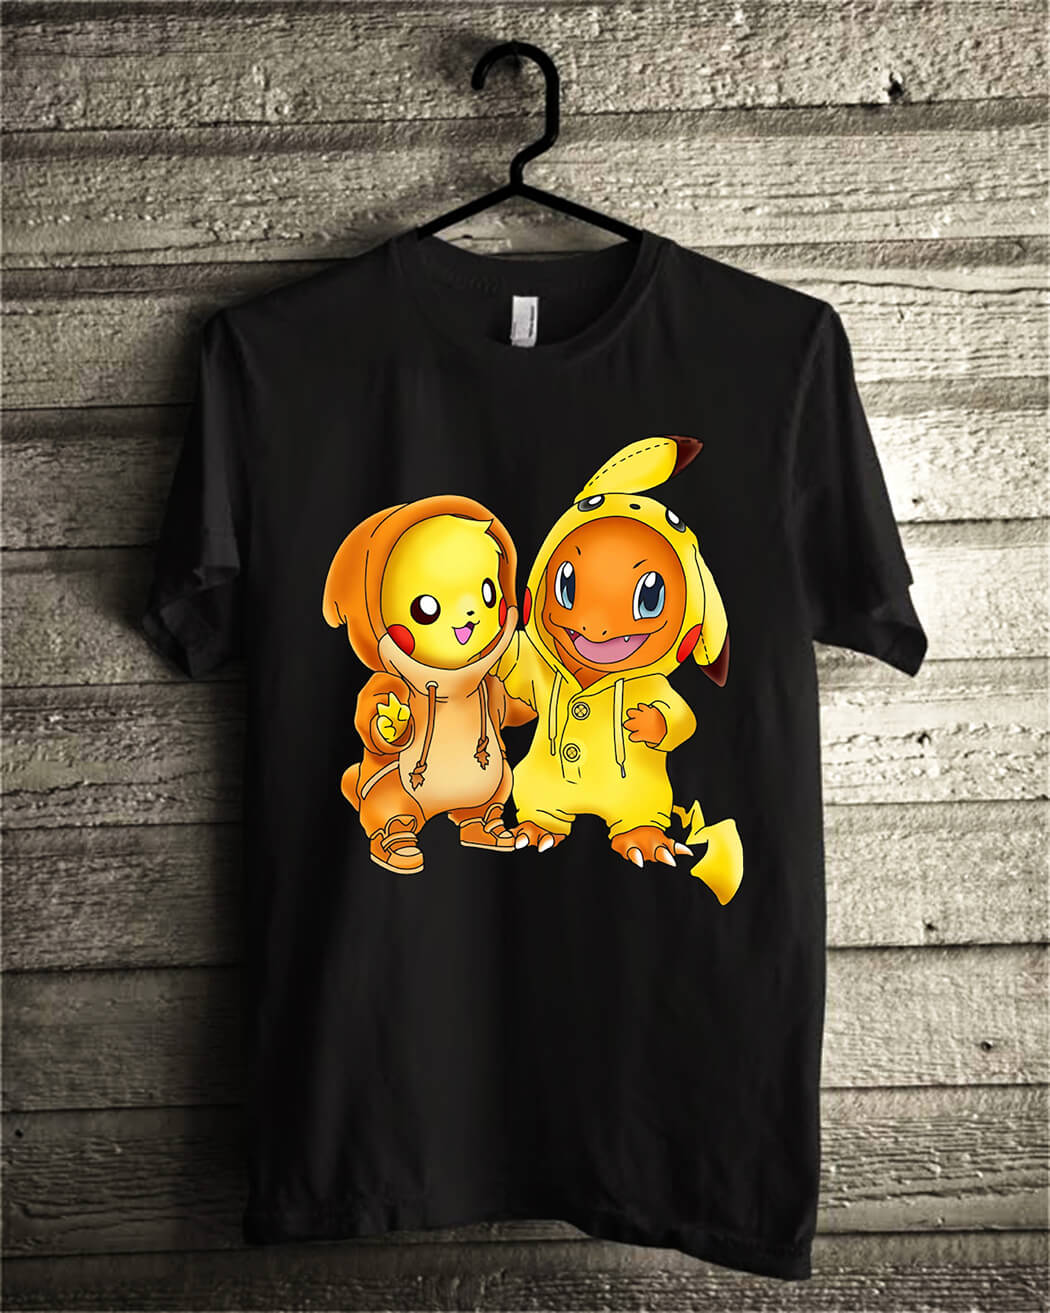 Pikachu and Pikachu Charmander pokemon shirt